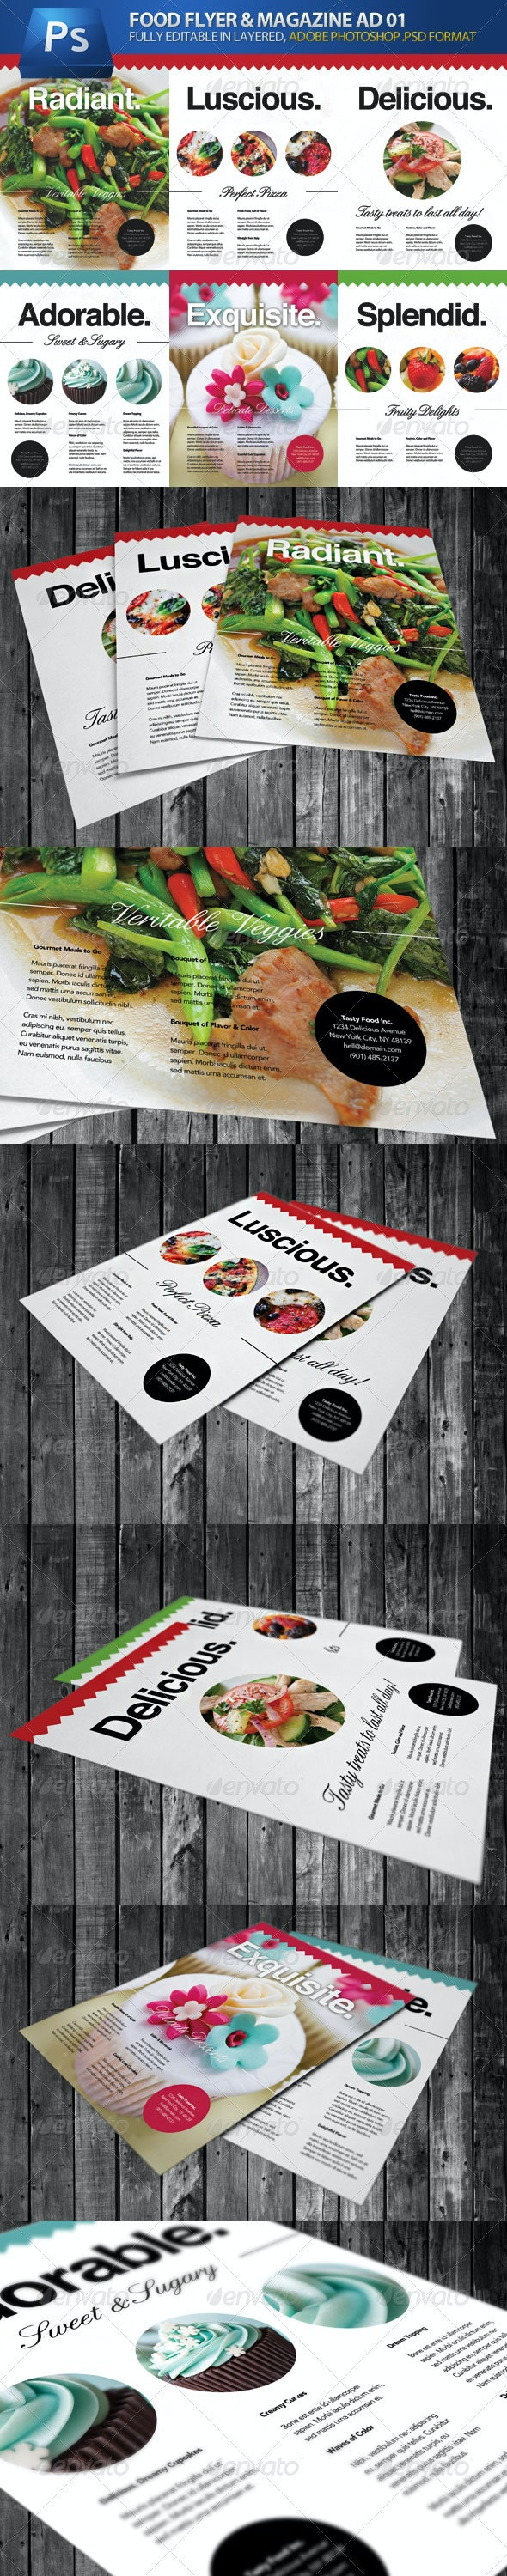 Food & Cooking Flyer & Magazine Adverts - Restaurant Flyers